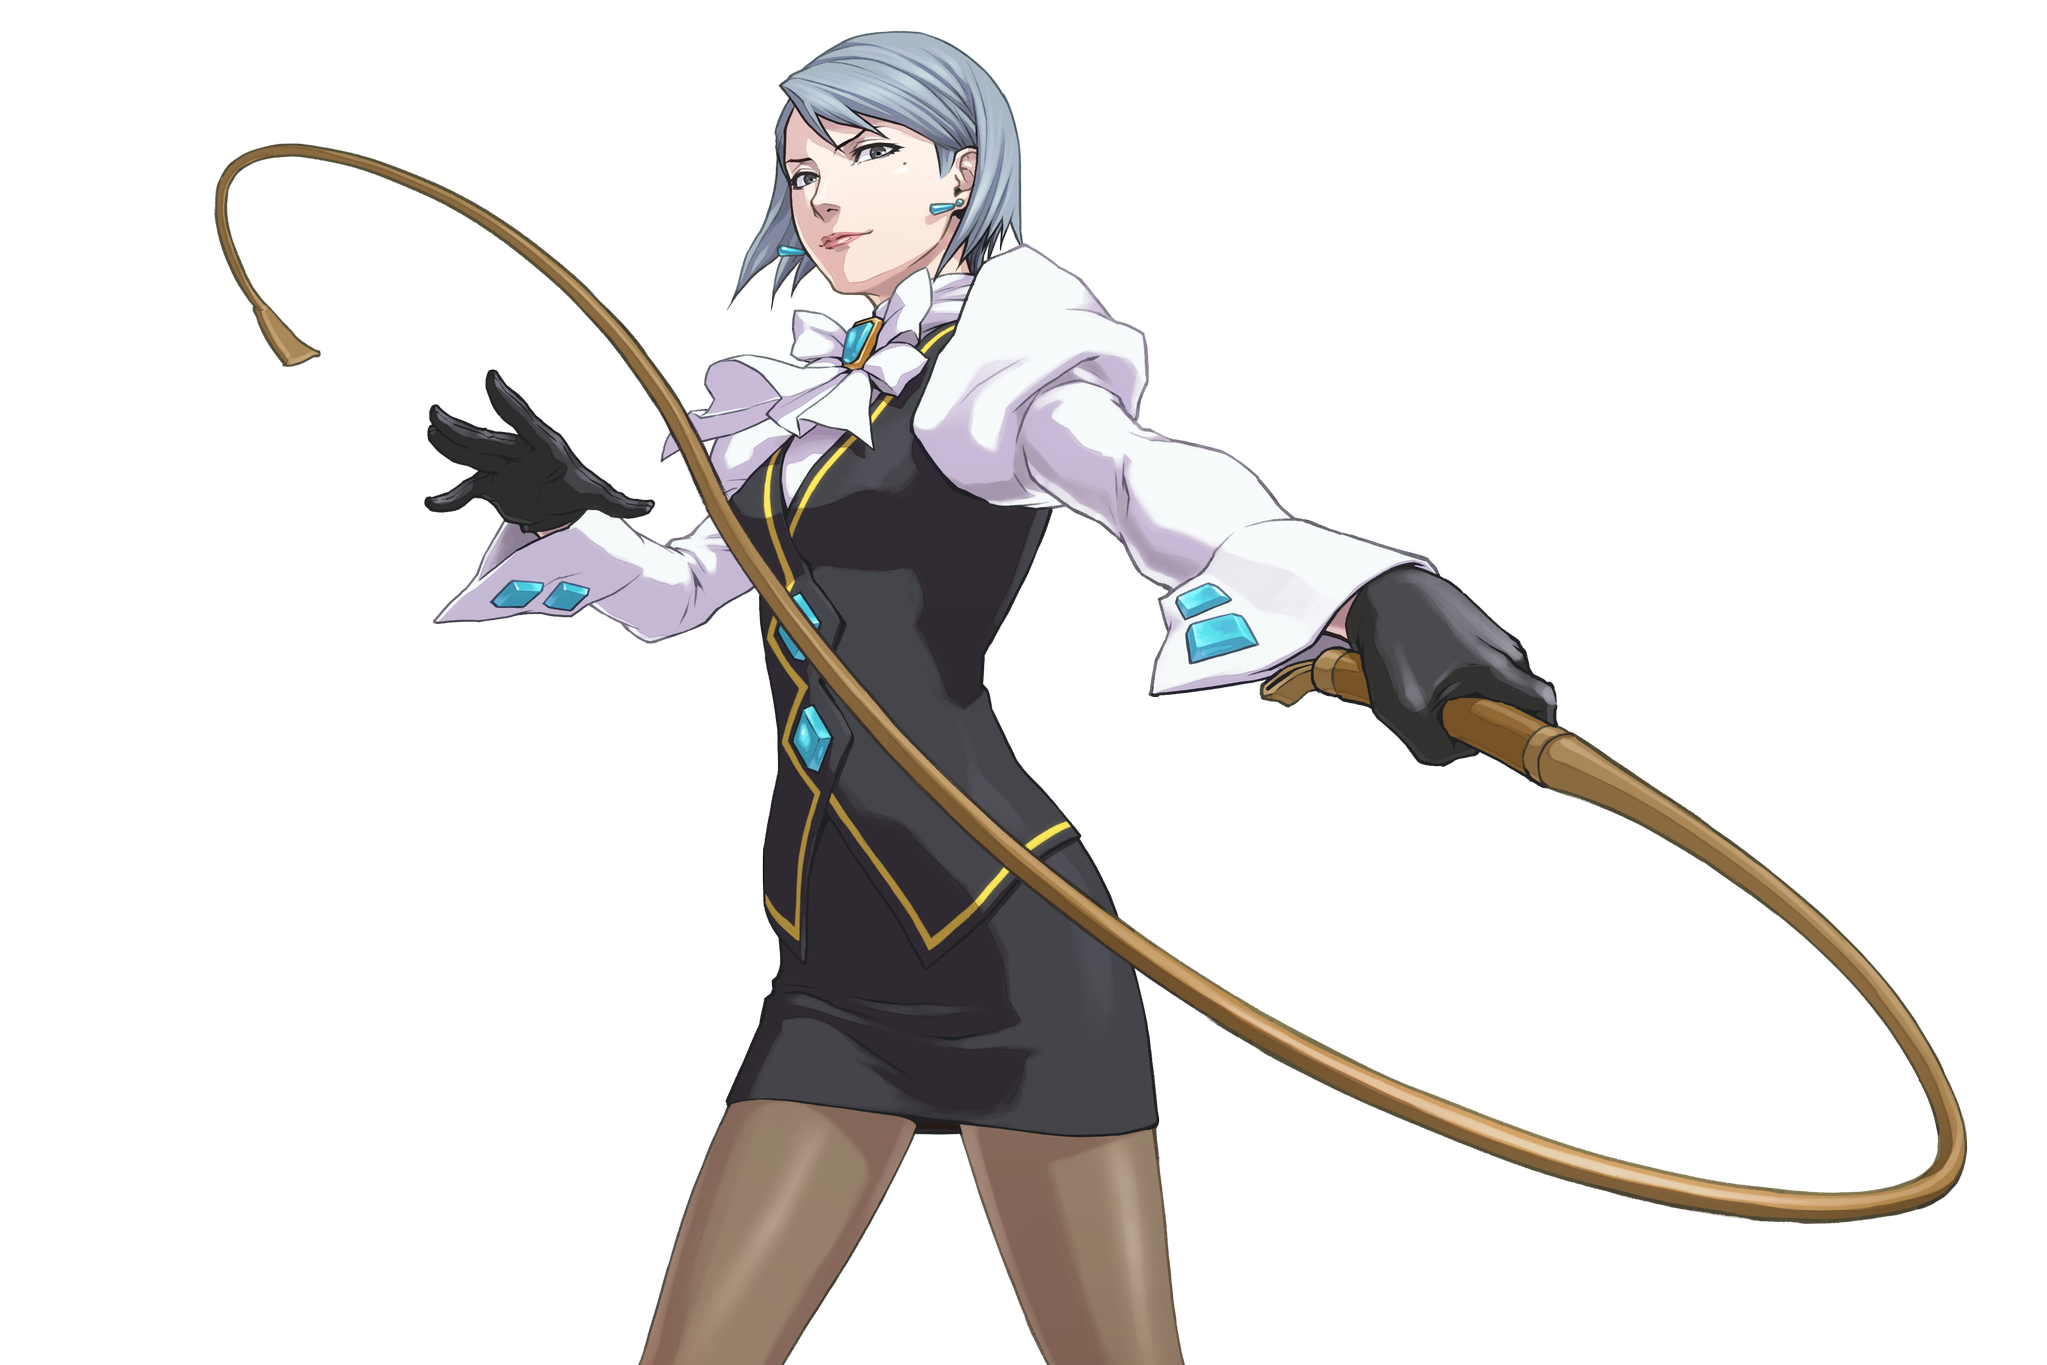 Franziska Von Karma Of The Ace Attorney Series Capcom Ace Manga Karma The anime hints that morgan fey and ini miney are responsible for dr. franziska von karma of the ace attorney